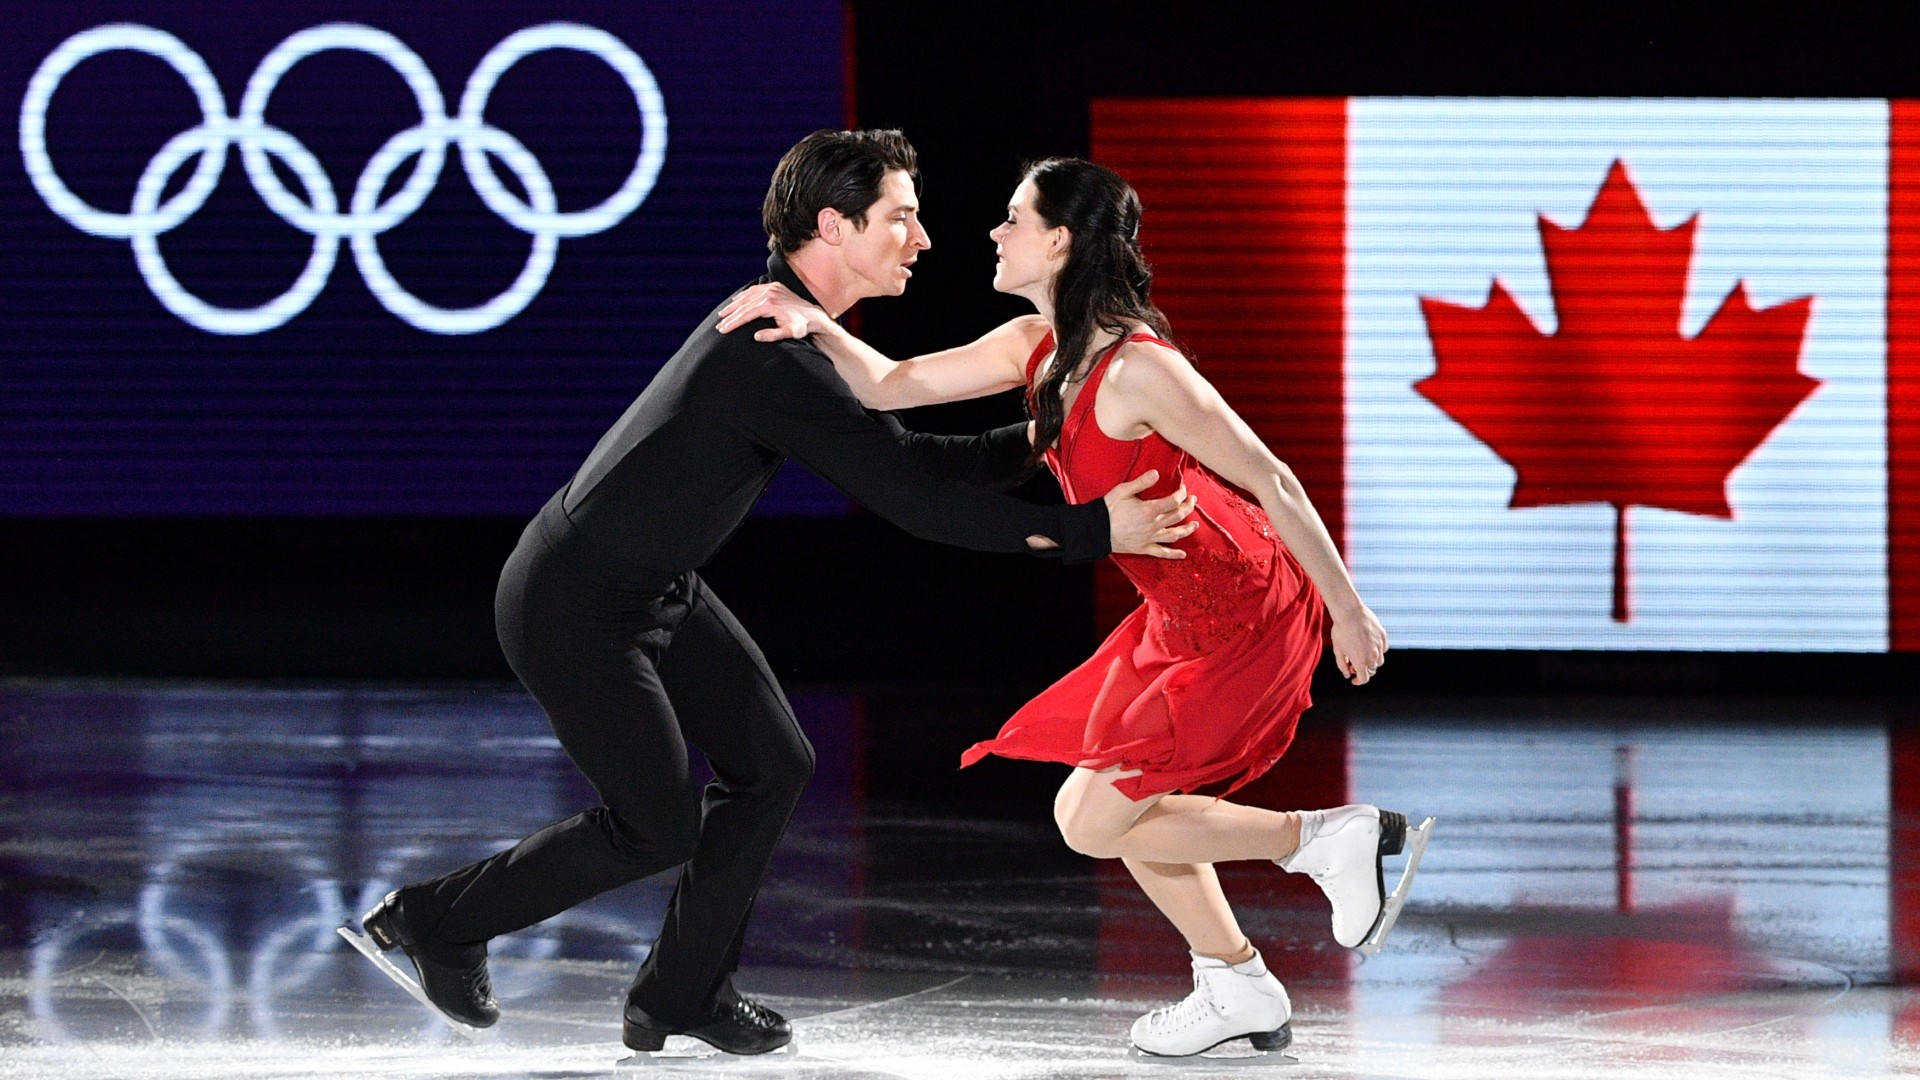 Virtue and Moir announce retirement from figure skating following 'Rock the Rink' tour